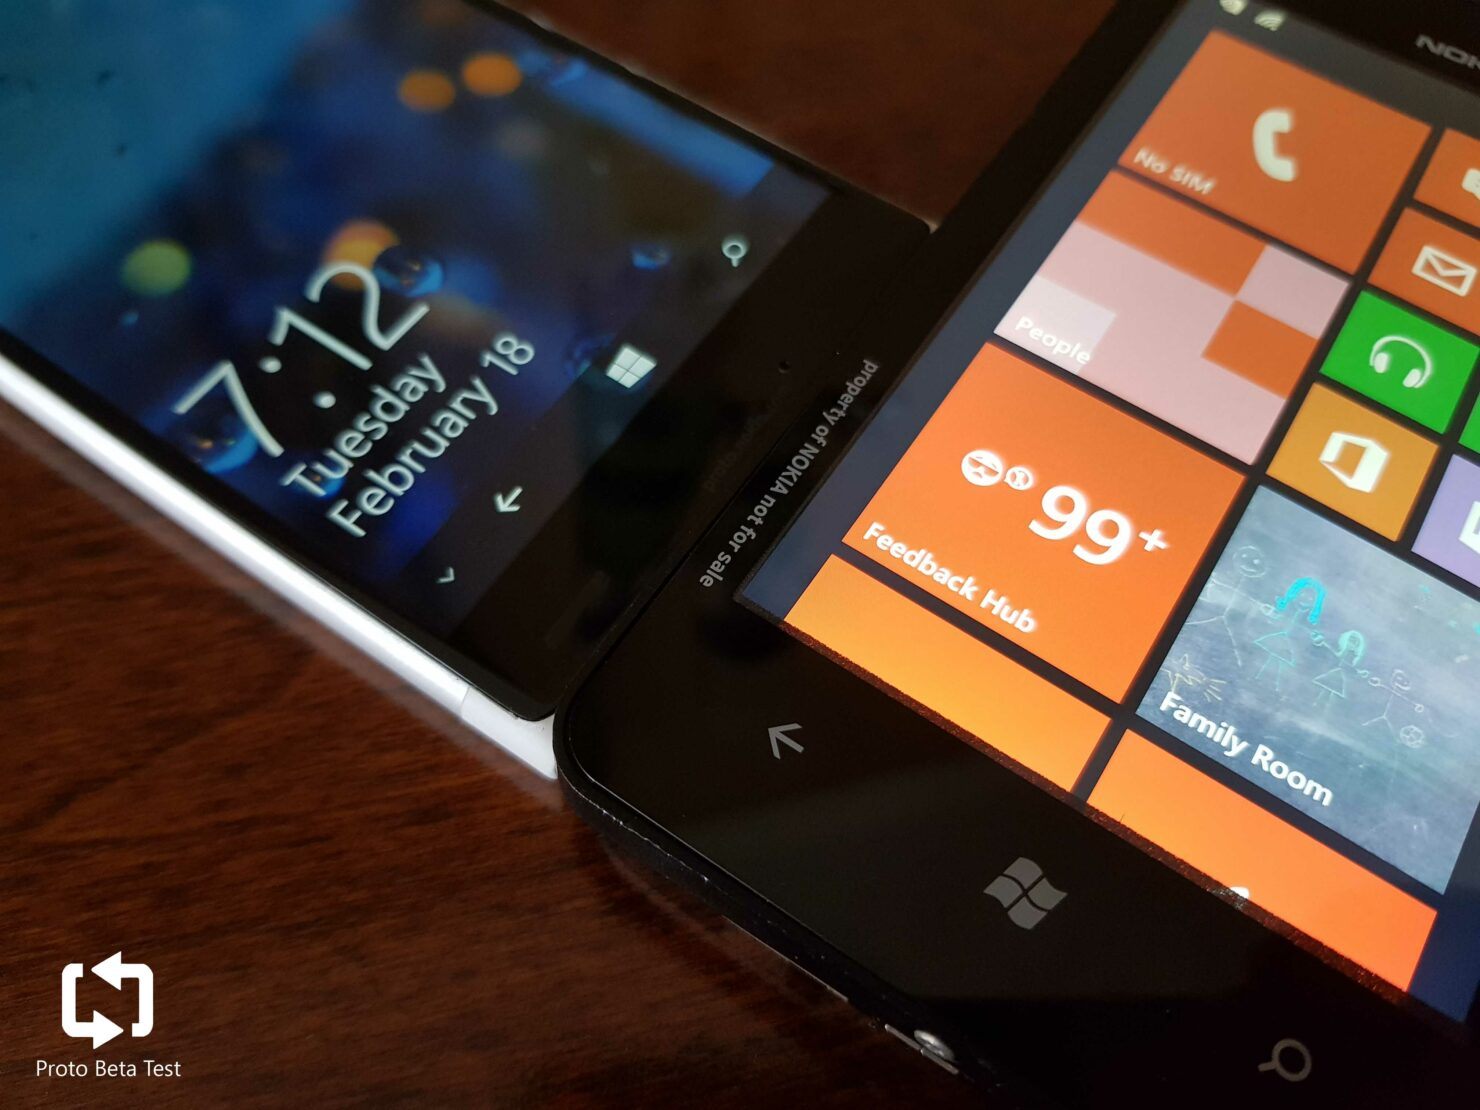 nokia-phone-with-3d-touch-technology-4